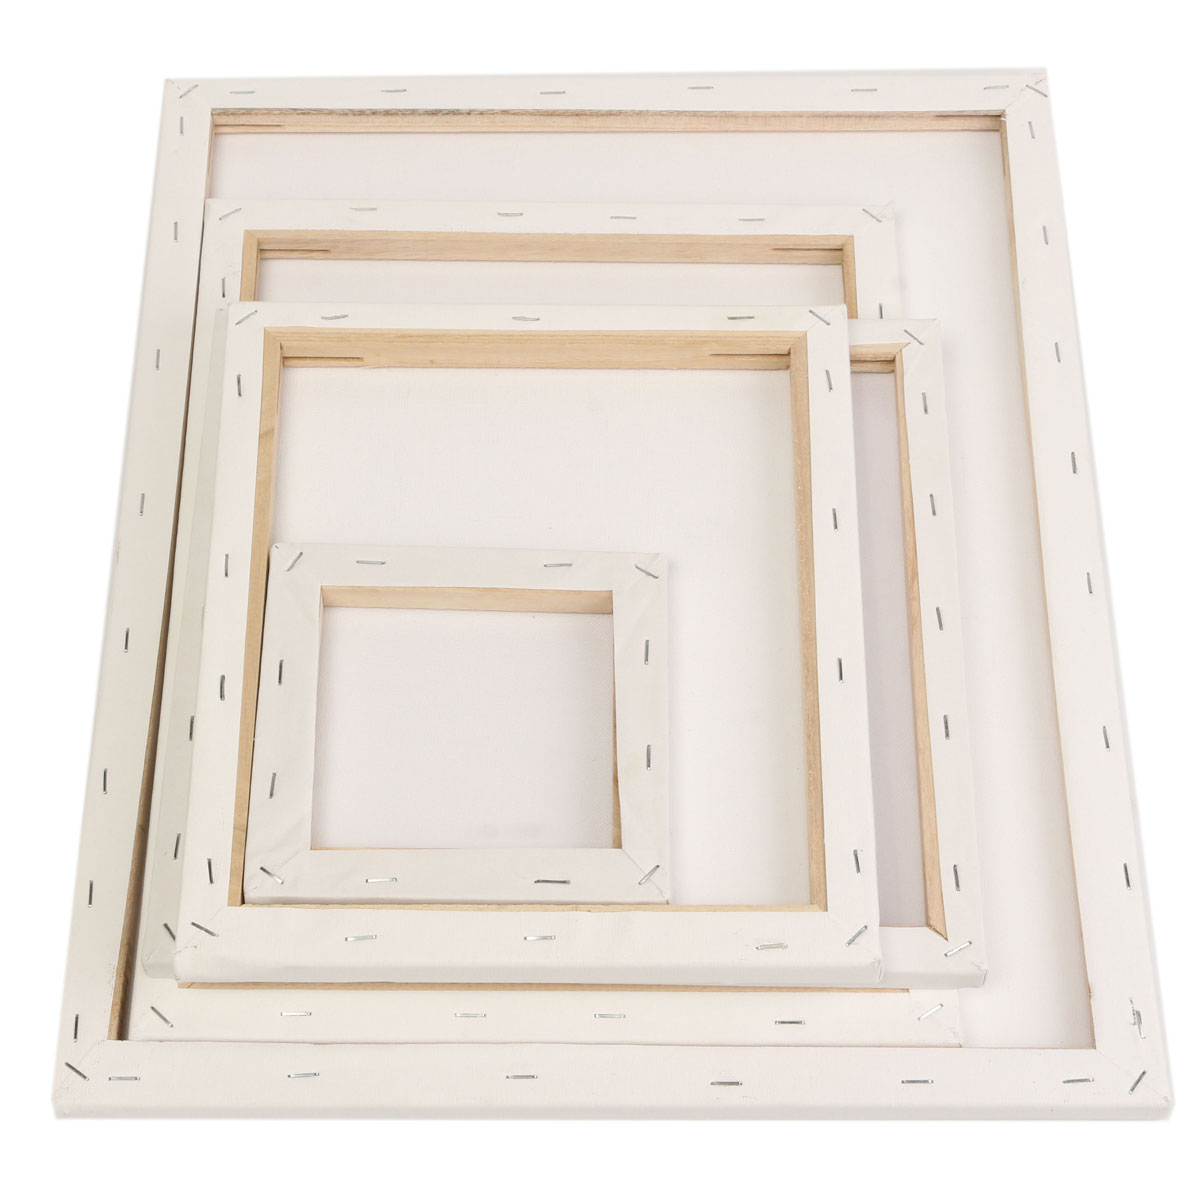 White Blank Square Canvas Painting Drawing Board Wooden Frame For Art Artist Oil Acrylic Paints